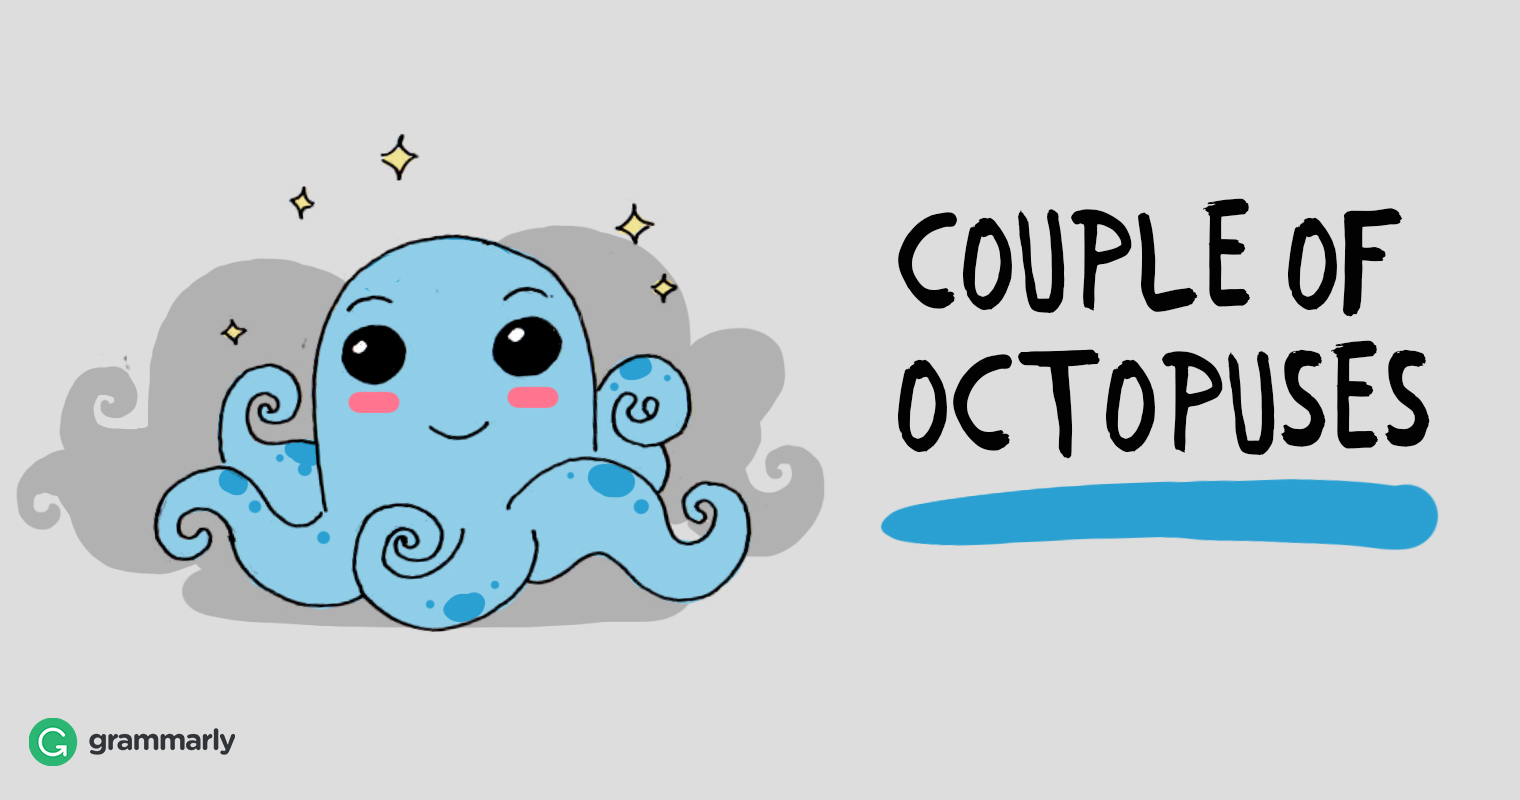 The Plural of Octopus: Octopi or Octopuses image